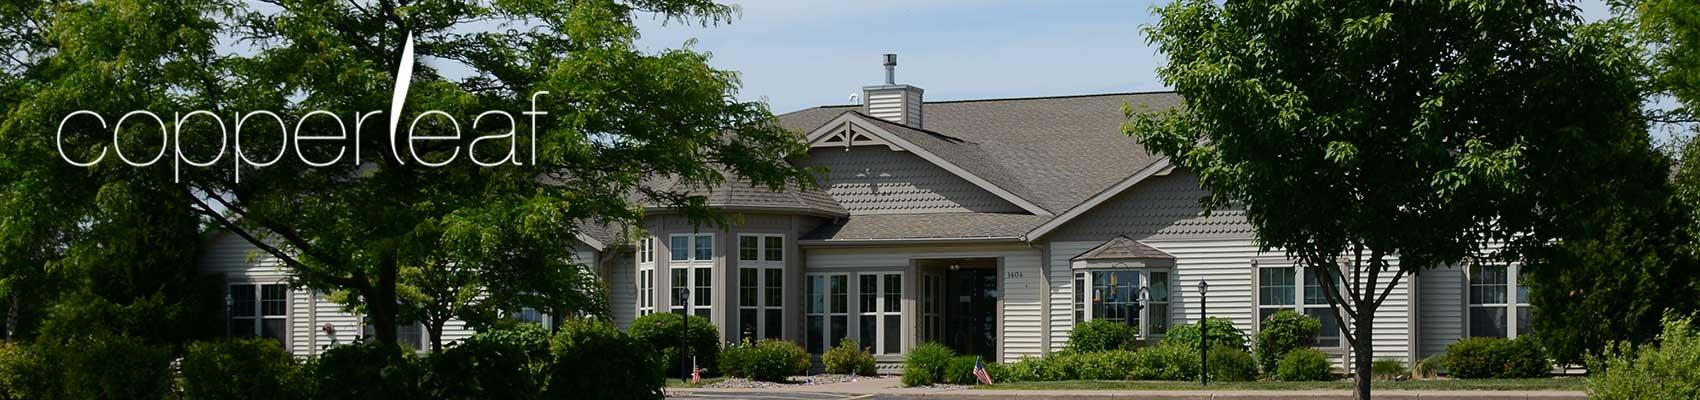 Assisted Living assisted living facilities Mill Creek Community Wisconsin Portage County